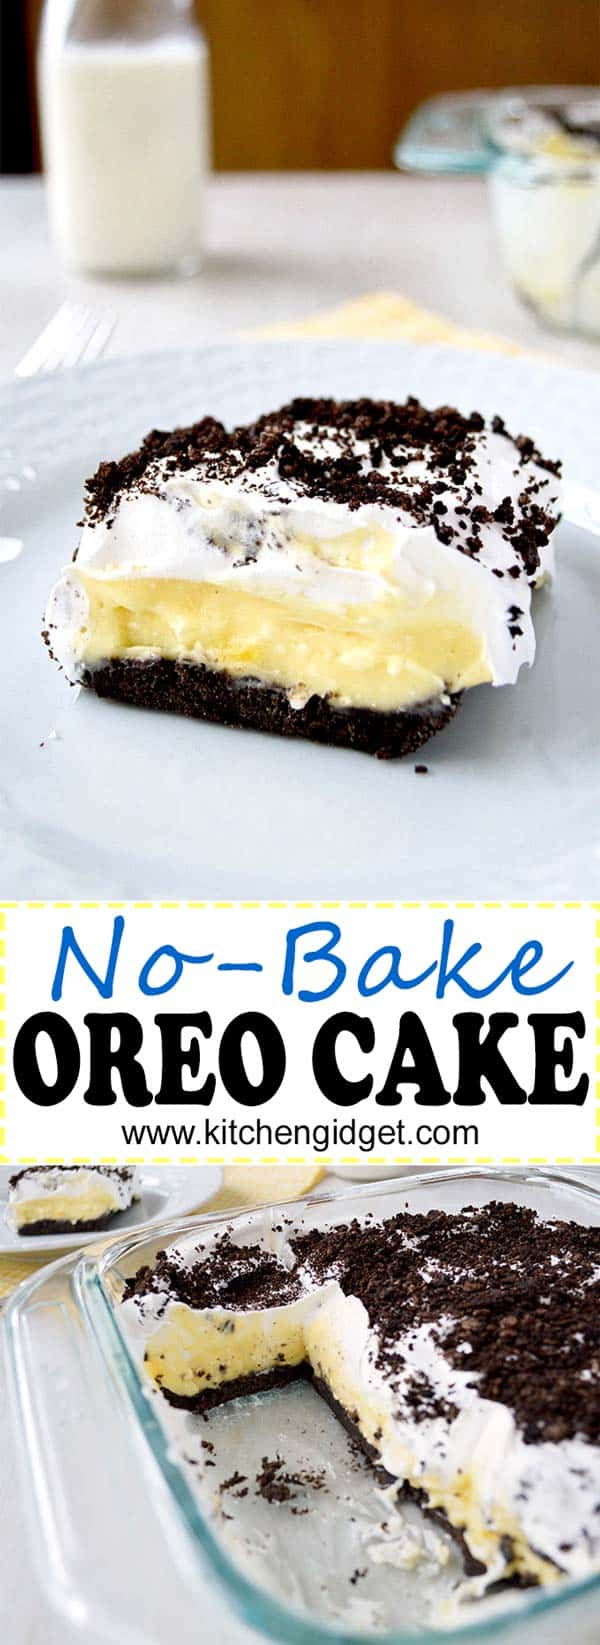 This no bake Oreo Cake is layers of vanilla pudding, cream cheese and cool whip on an Oreo crust! (AKA Oreo Delight, Dessert Lasagna) | #dessert #dessertrecipes #recipe #recipeideas #food #foodblogger #foodgawker #oreos #easyrecipe #recipeoftheday #nobake #chocolate #vanilla